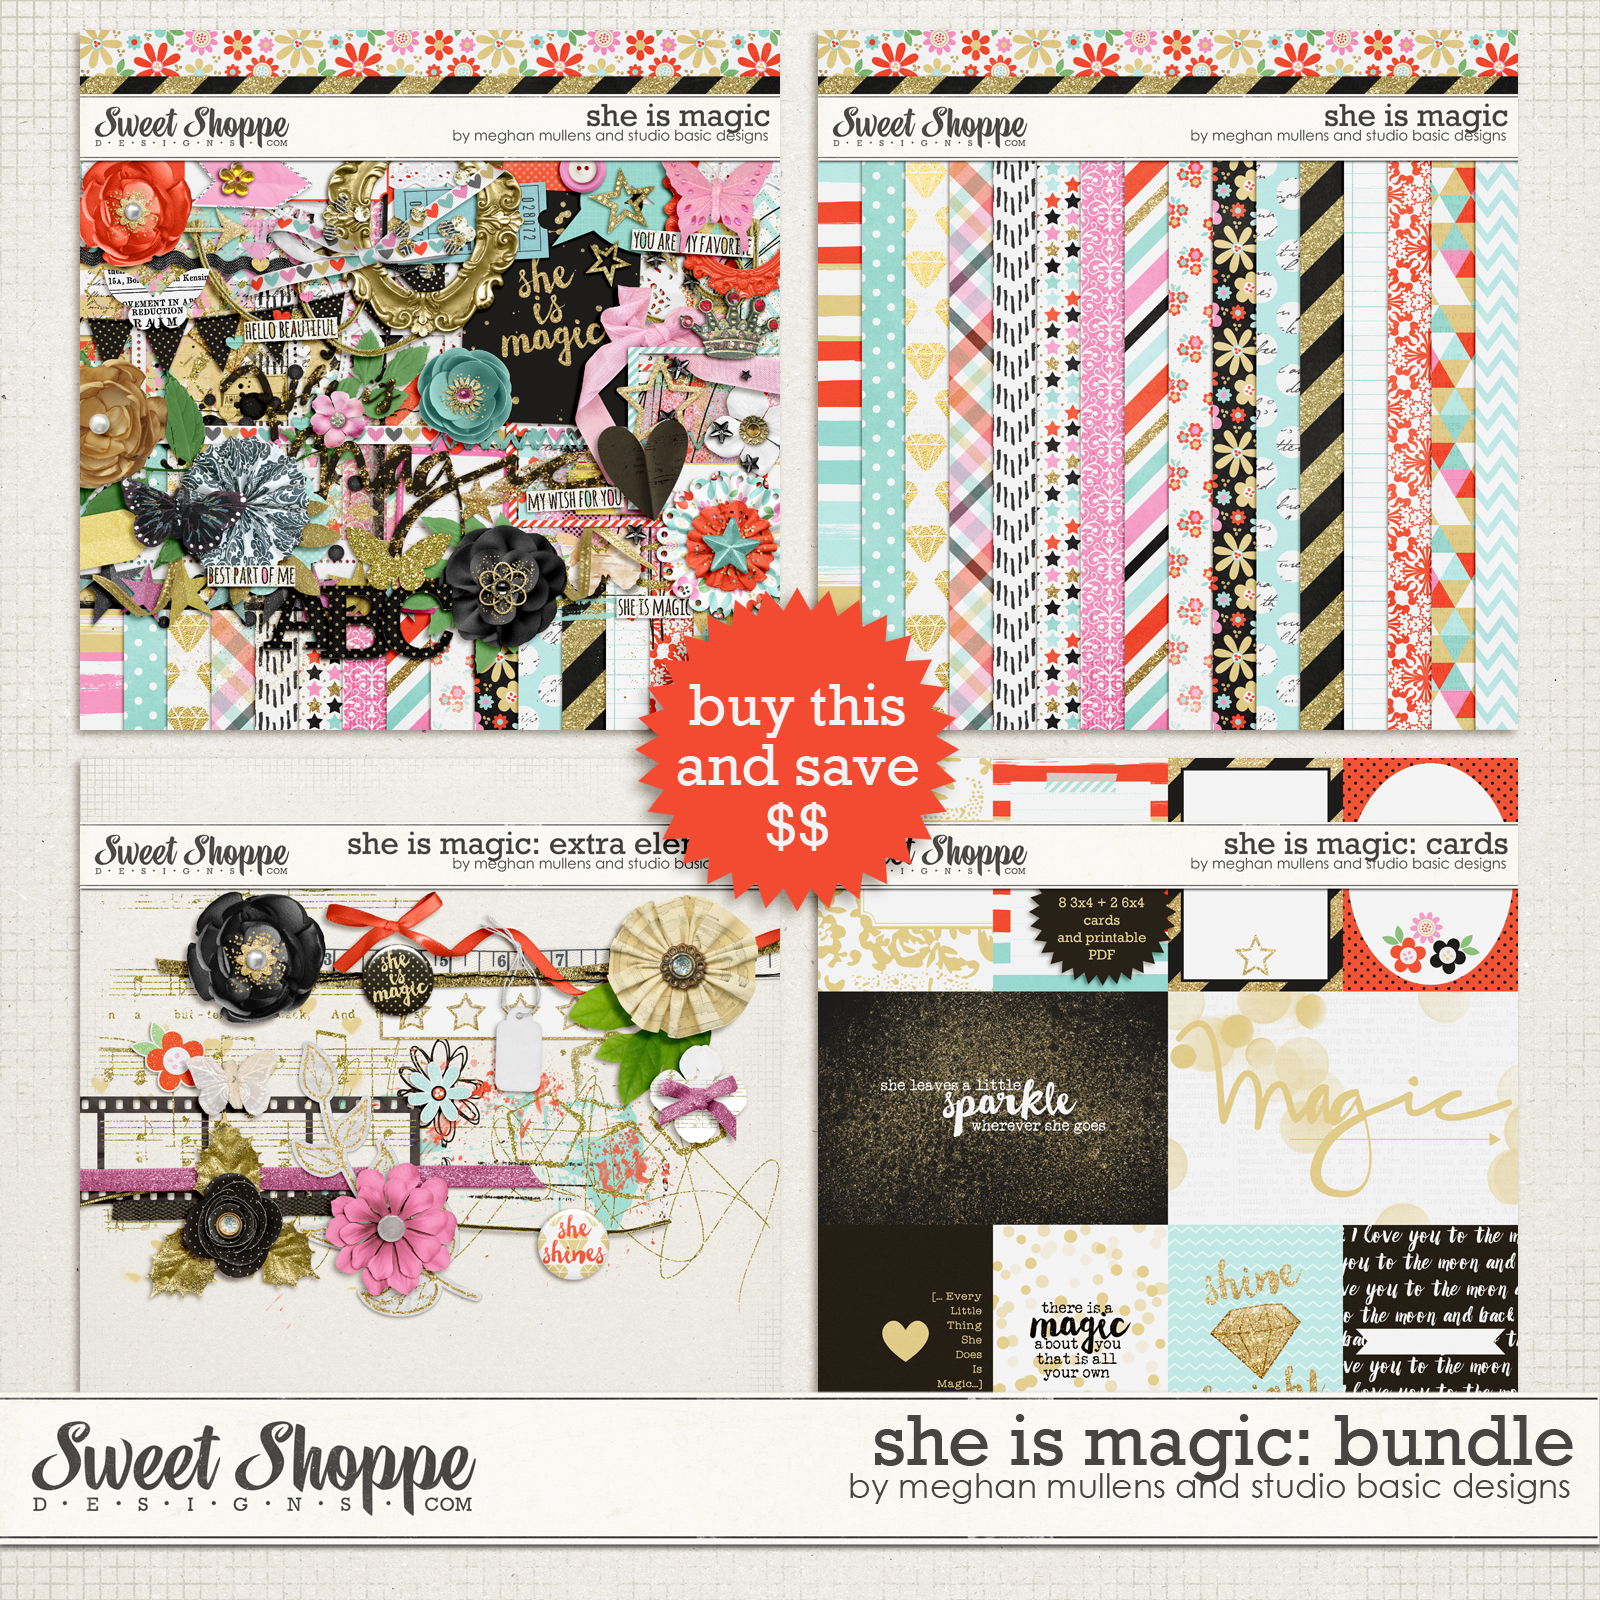 http://www.sweetshoppedesigns.com/sweetshoppe/product.php?productid=31326&cat=765&page=3